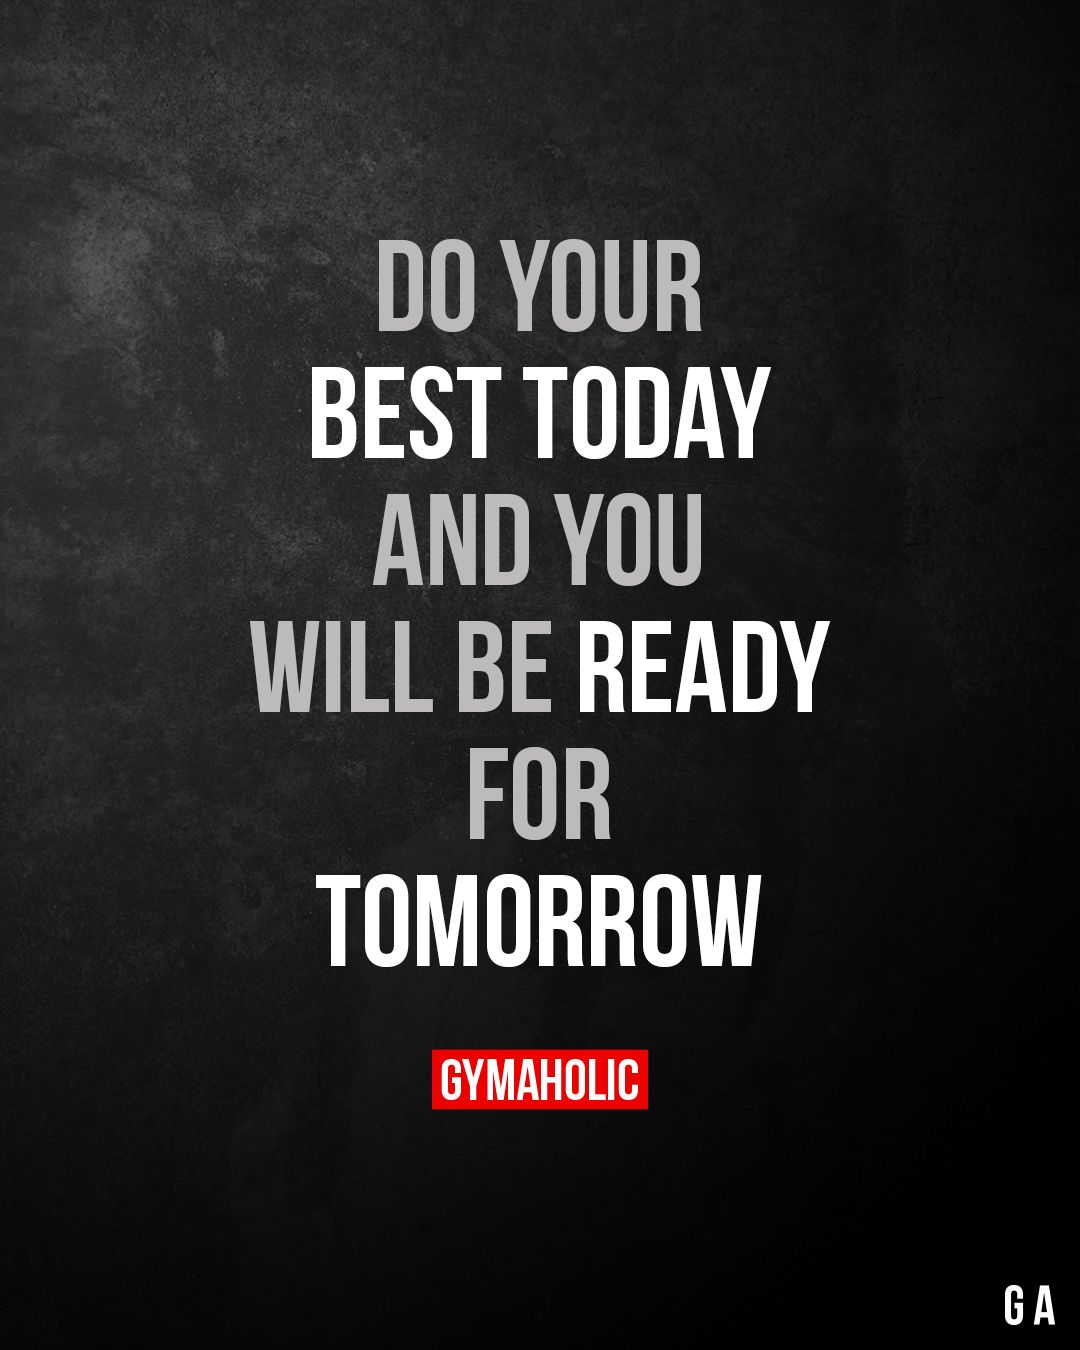 Do your best today and you will be ready for tomorrow